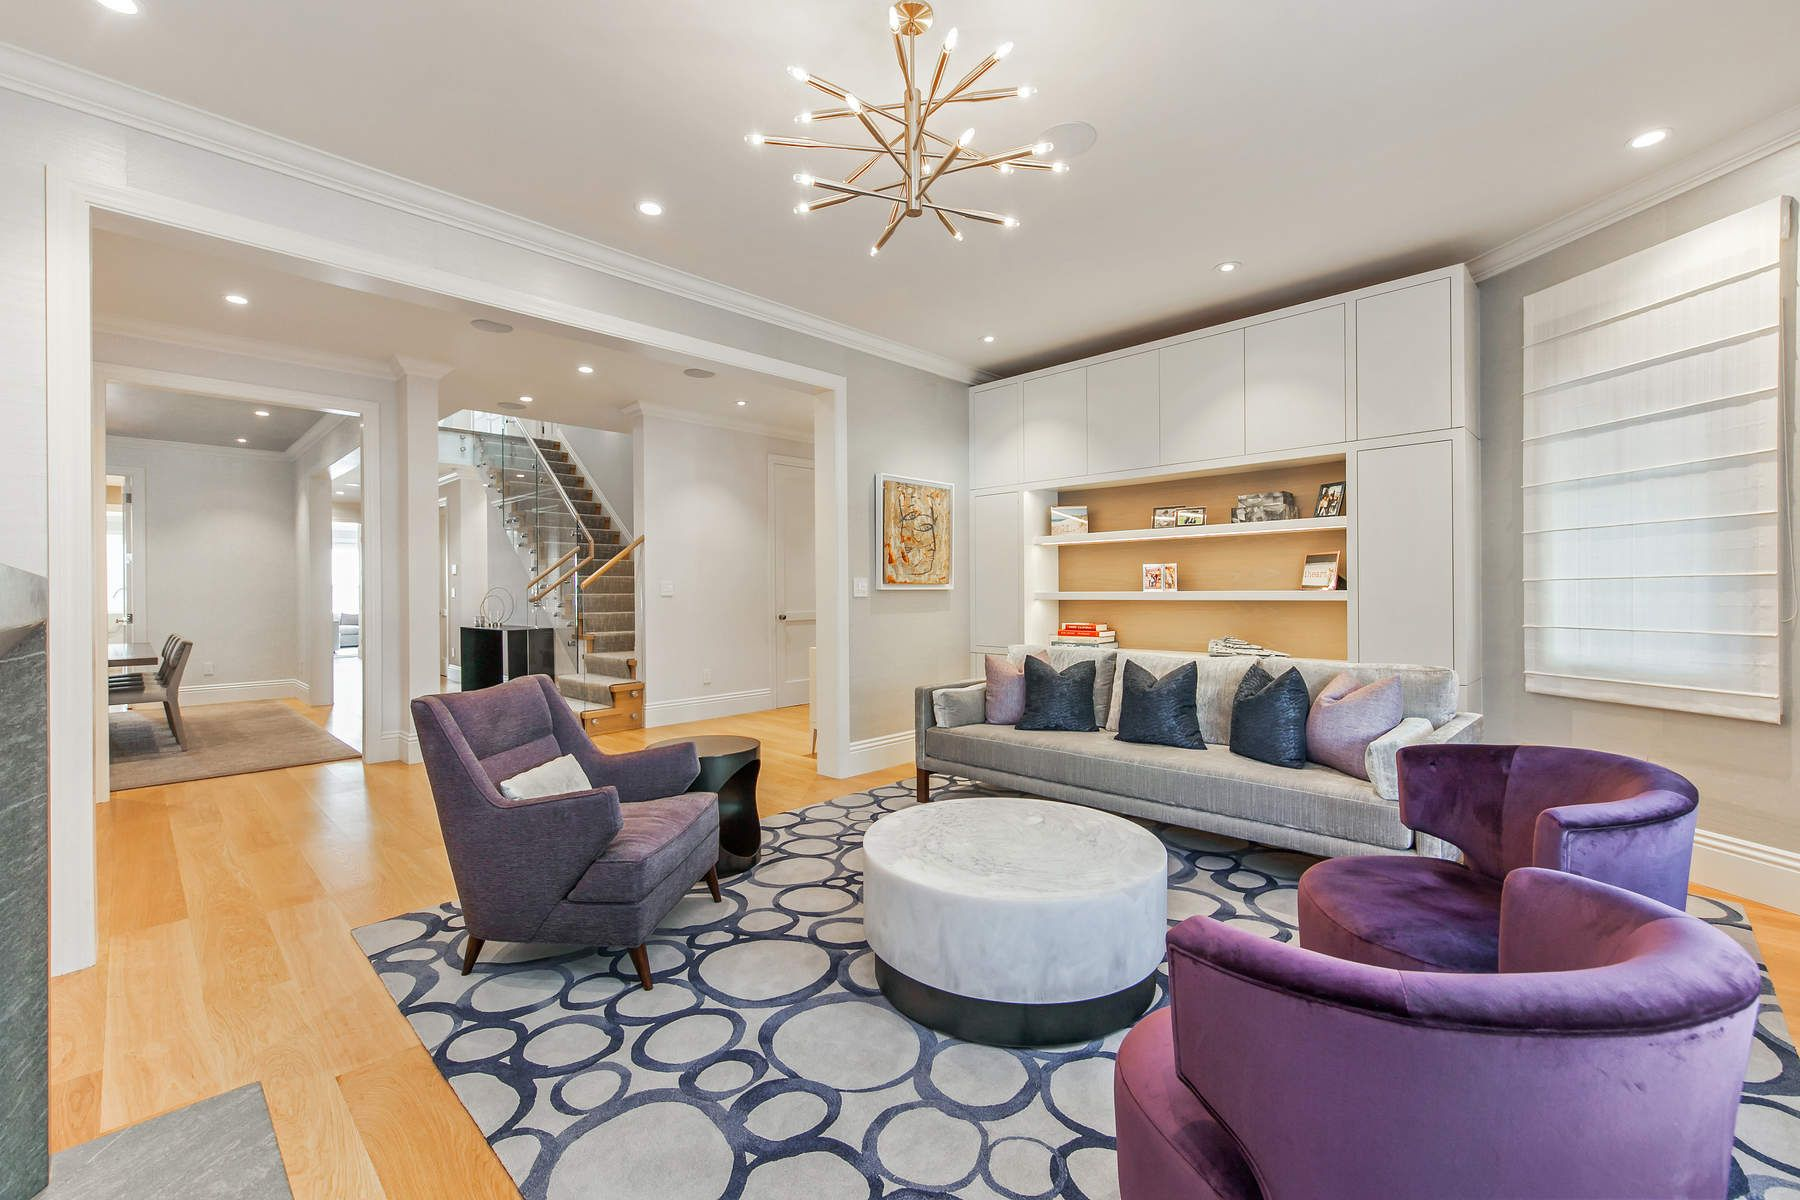 Single Family Home for Sale at Exquisite Presidio Heights Home San Francisco, California 94118 United States